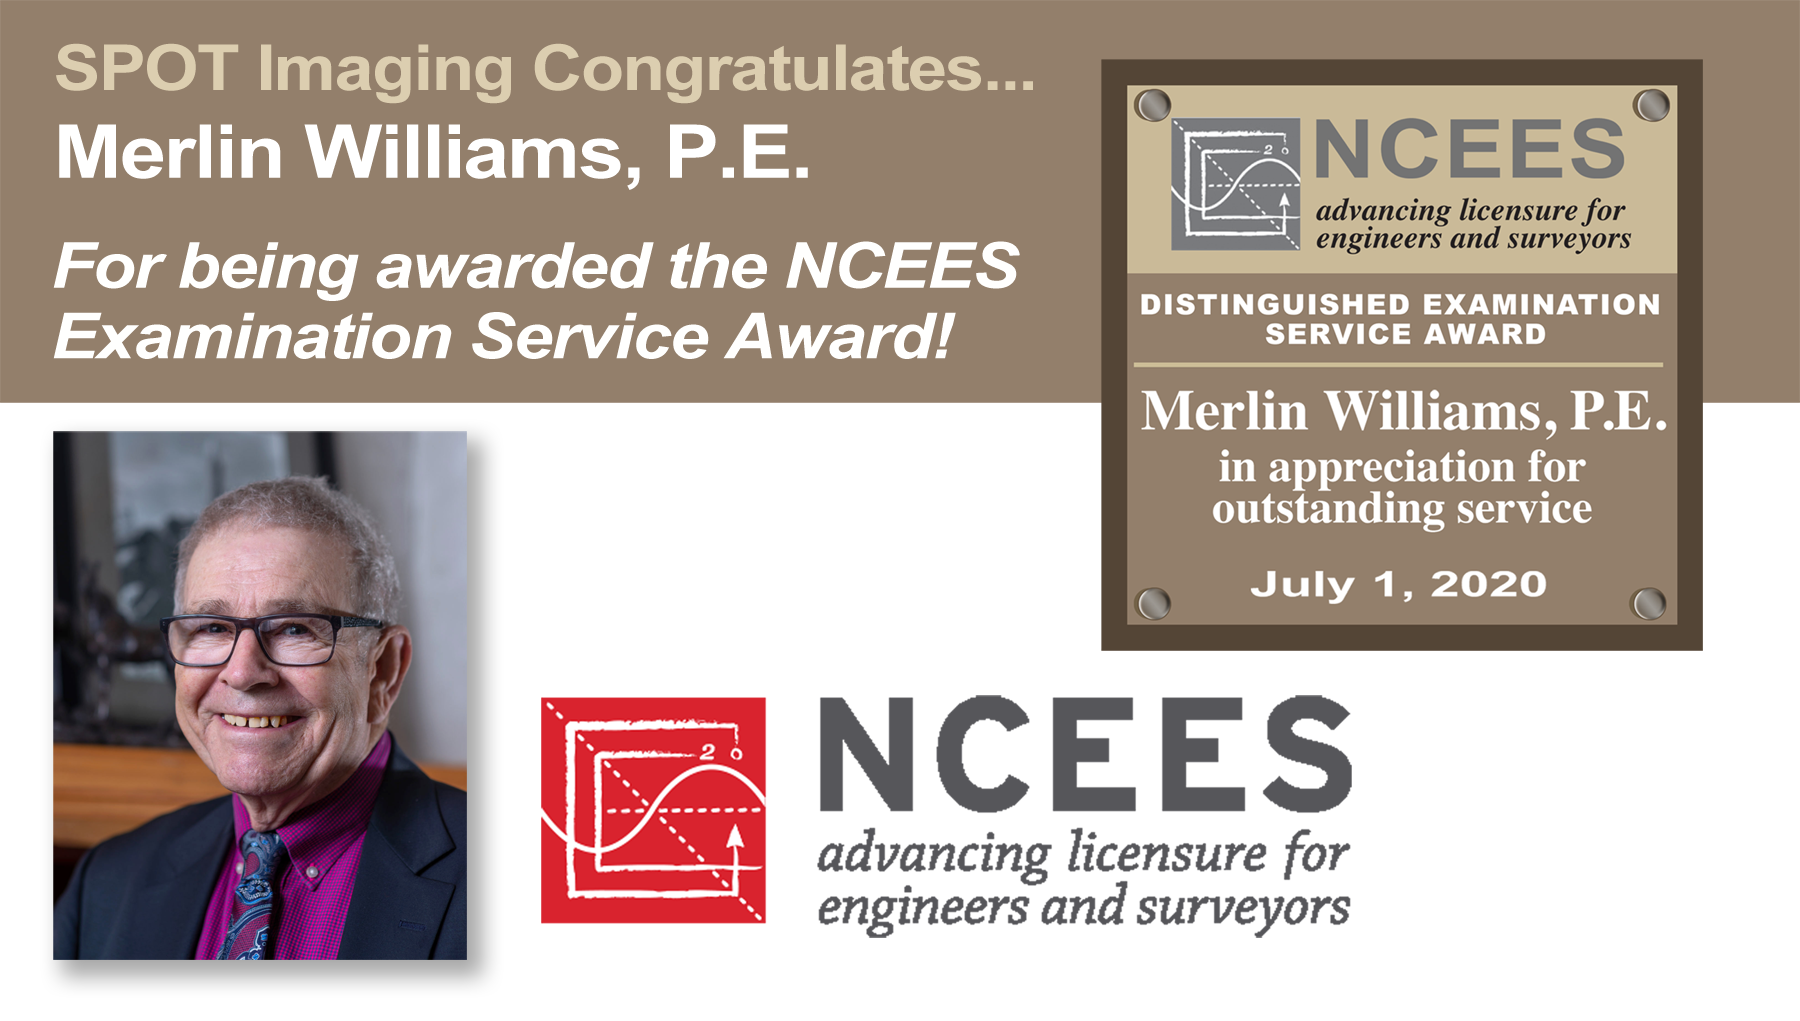 Congratulations to Merlin Williams, P.E. on receiving the NCEES Service Award!